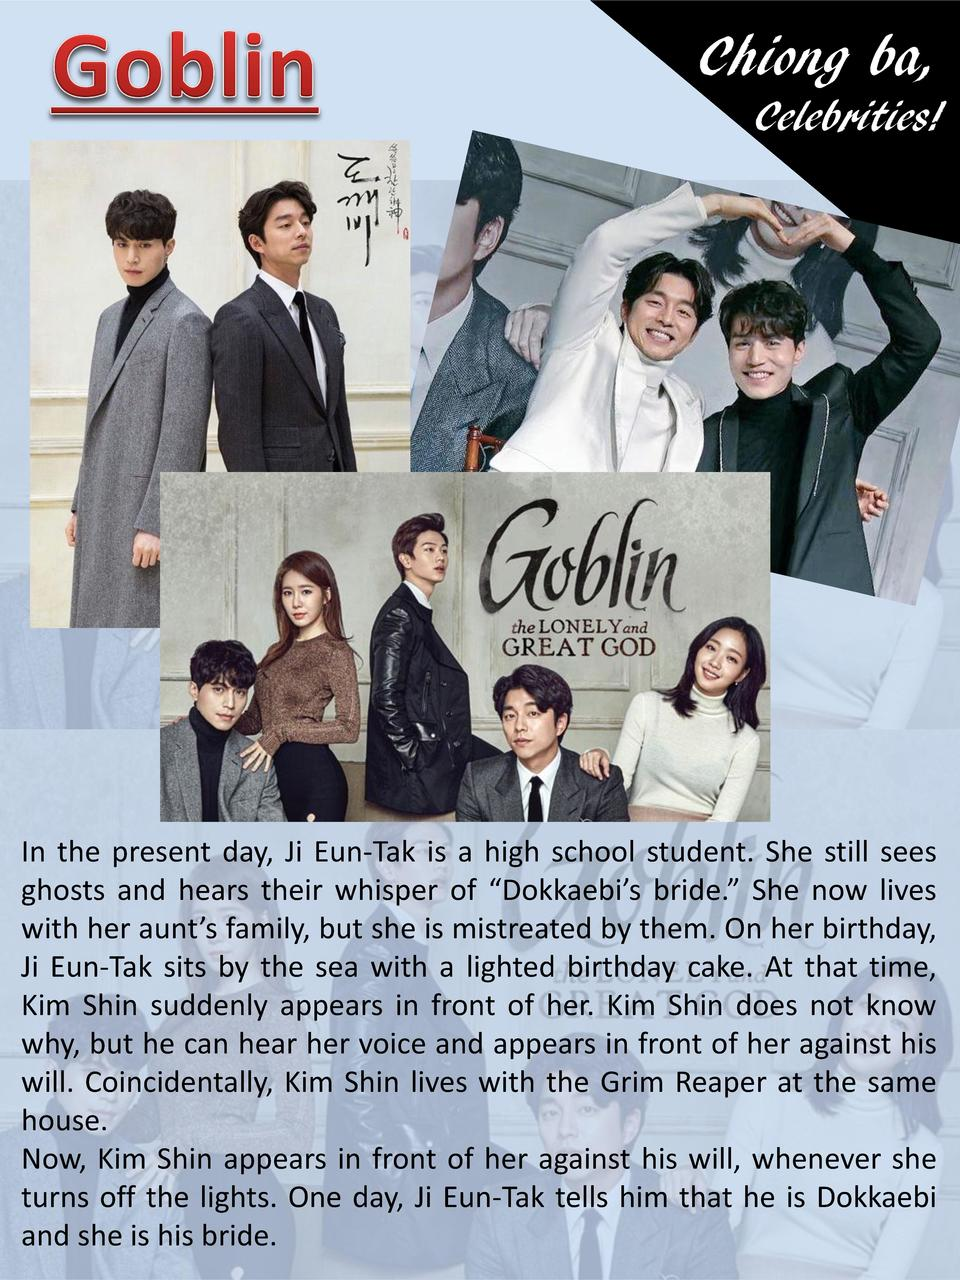 Chiong ba, Celebrities   In the present day, Ji Eun-Tak is a high school student. She still sees ghosts and hears their wh...